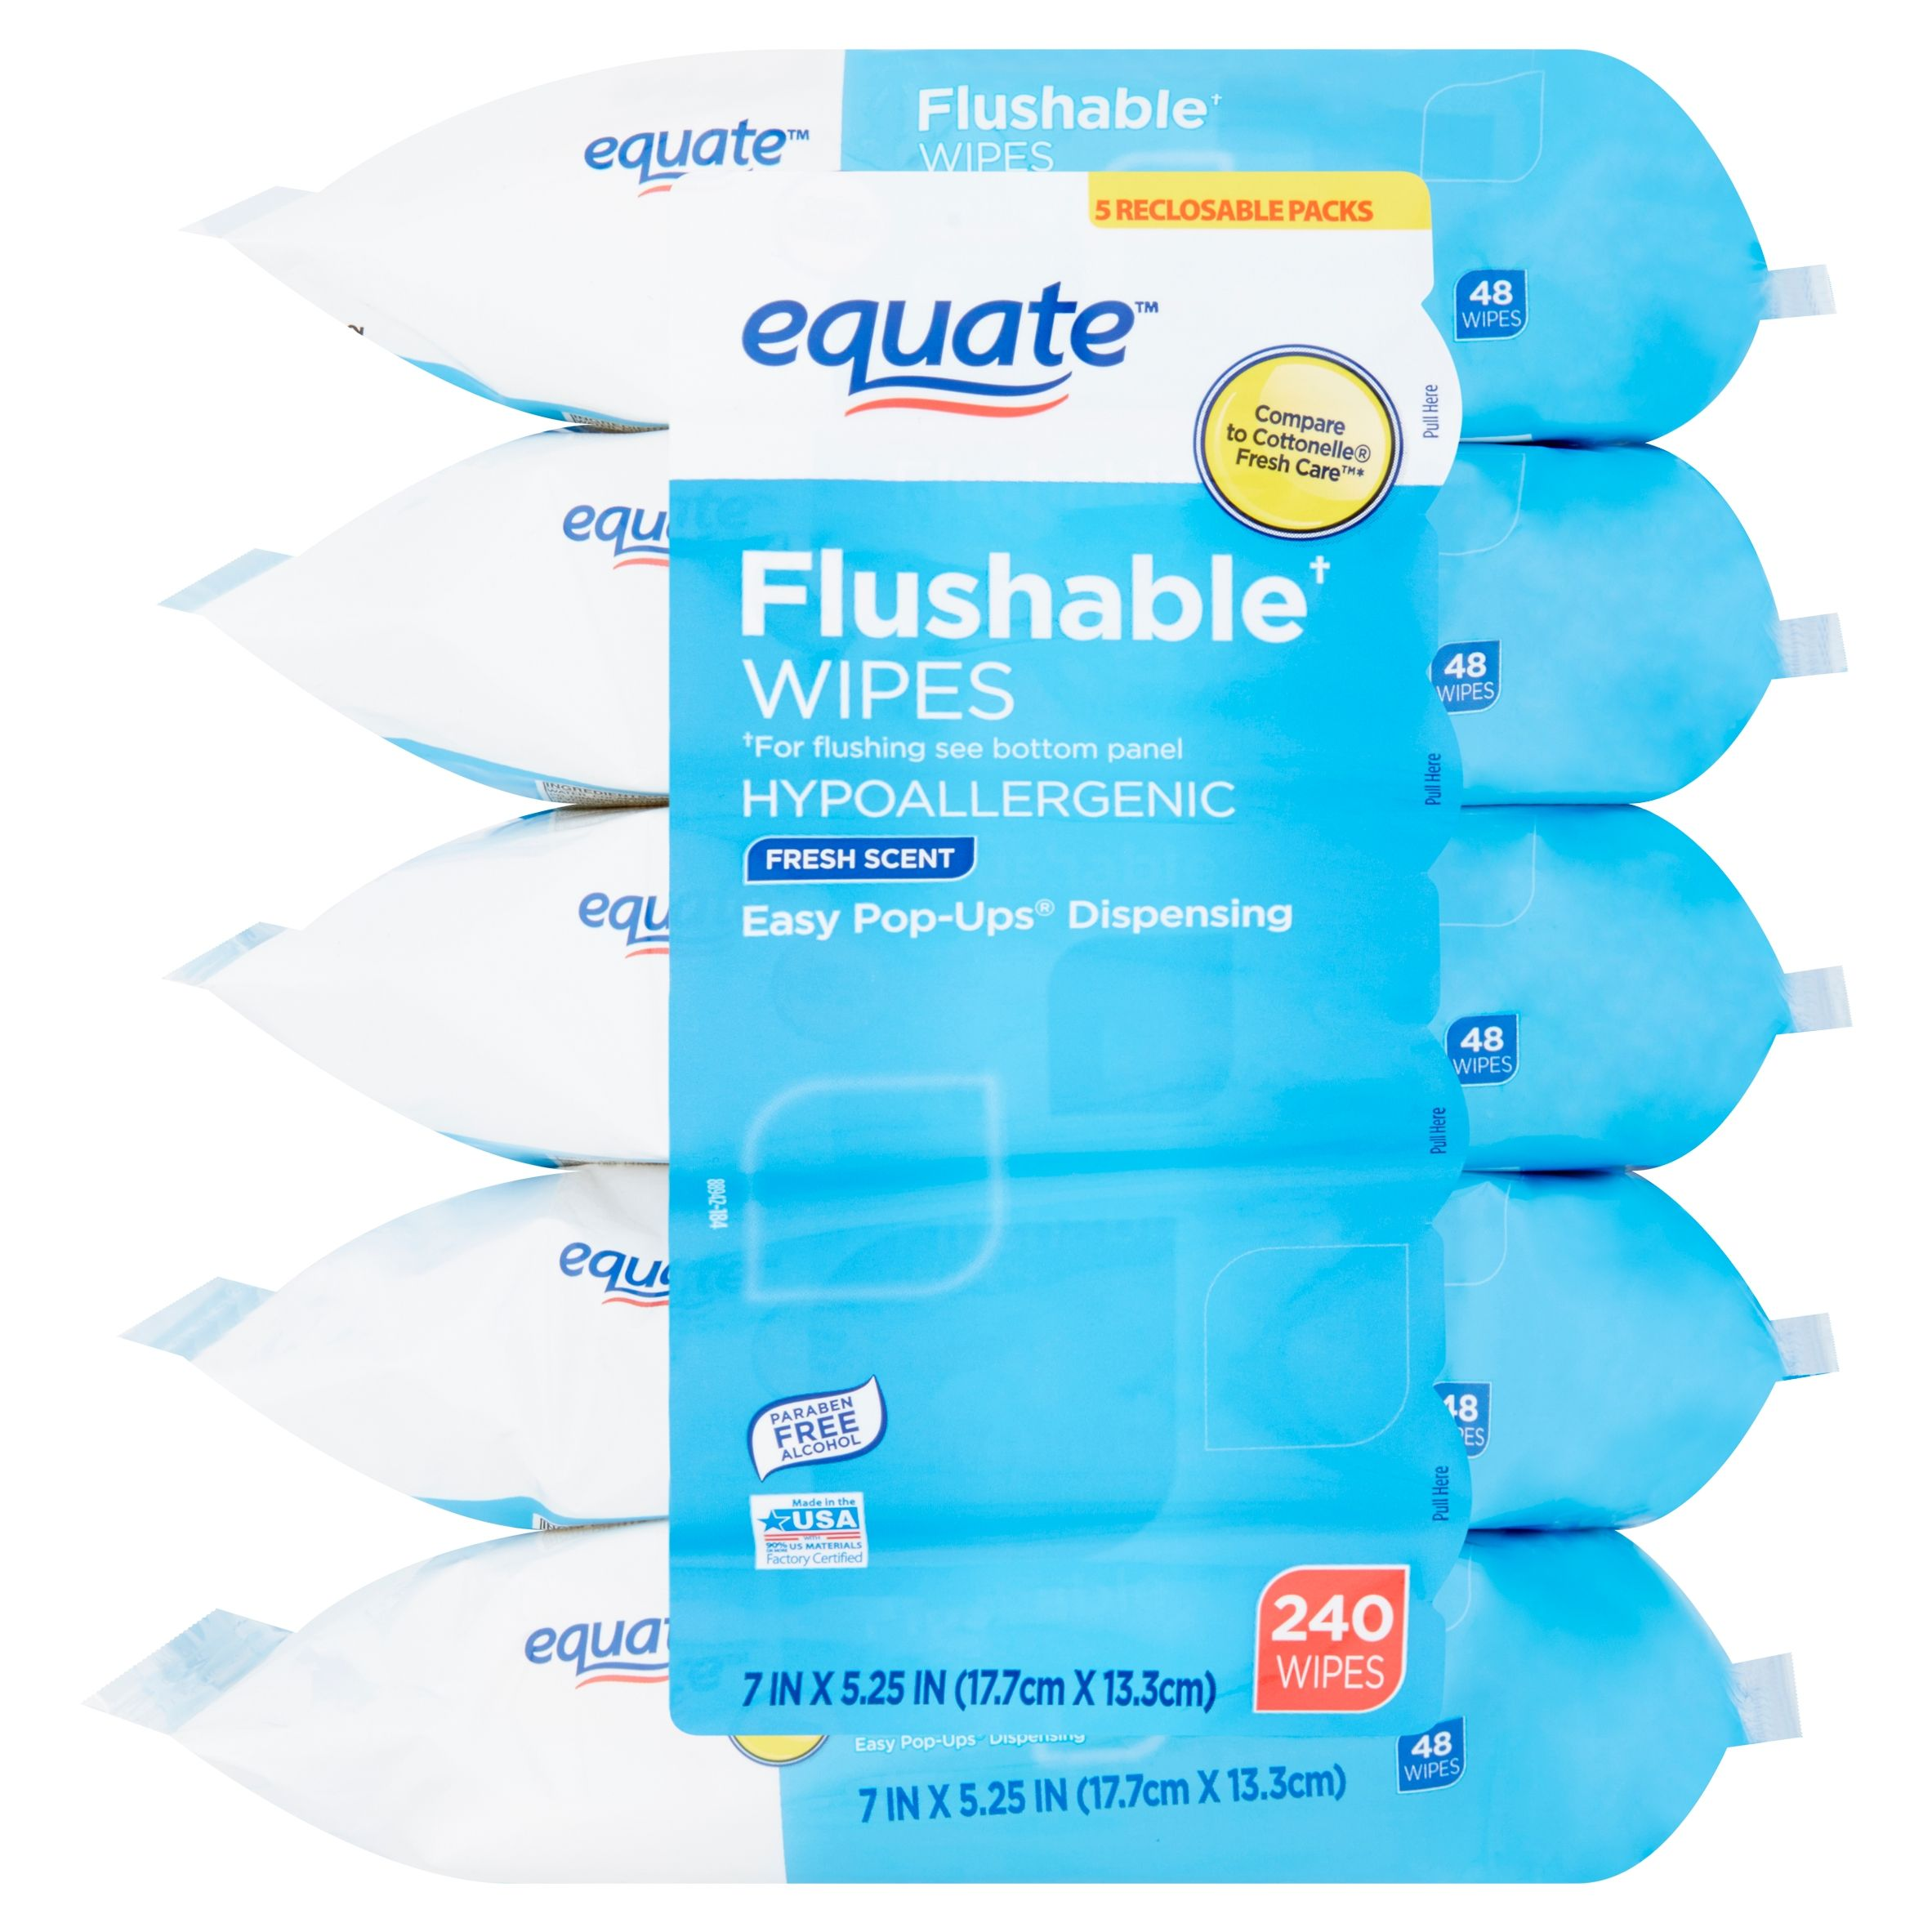 Equate Flushable Wipes, Fresh Scent, 5 packs of 48 wipes